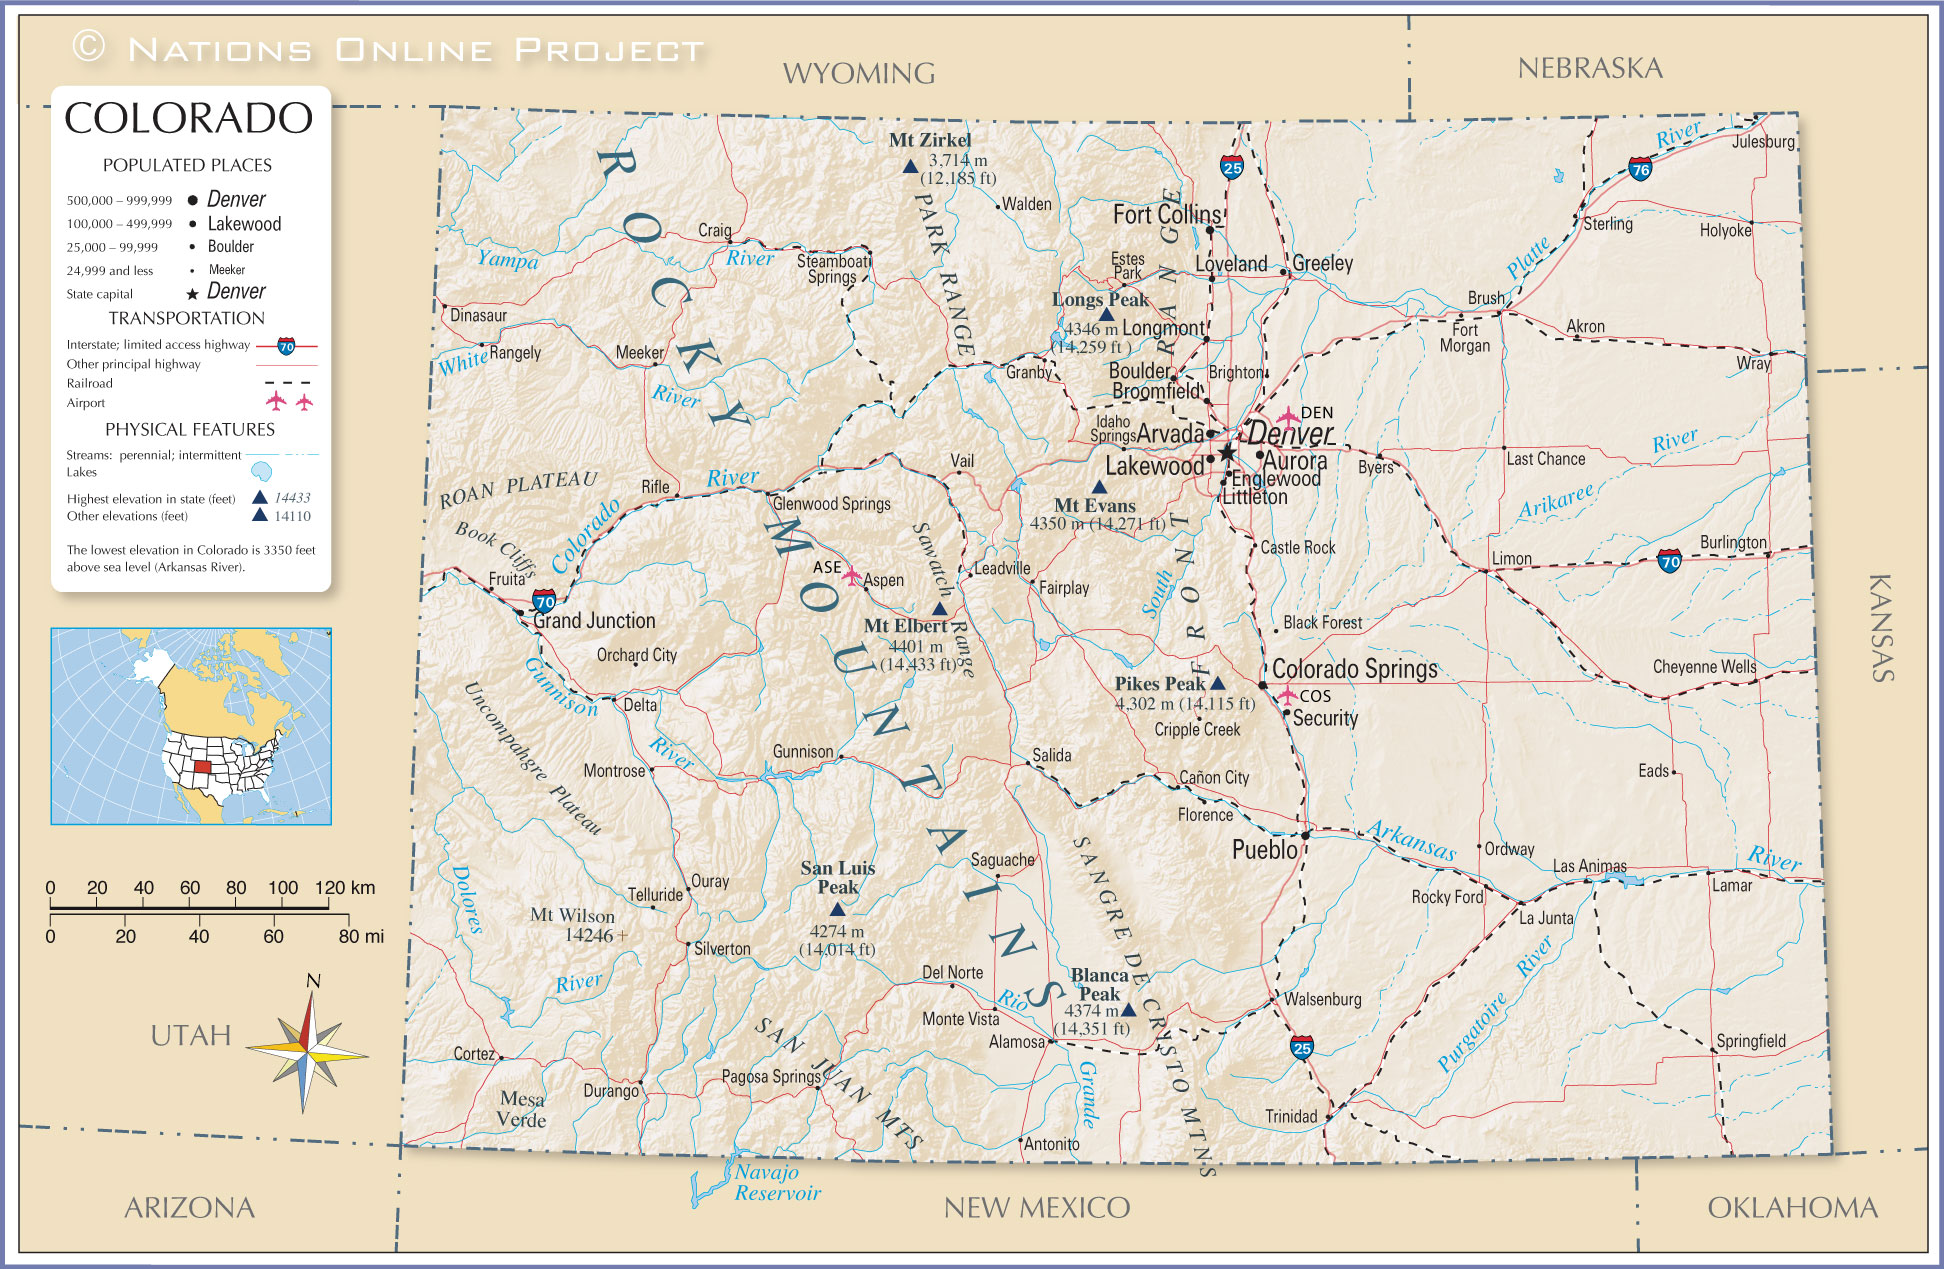 Reference Maps of Colorado, USA - Nations Online Project